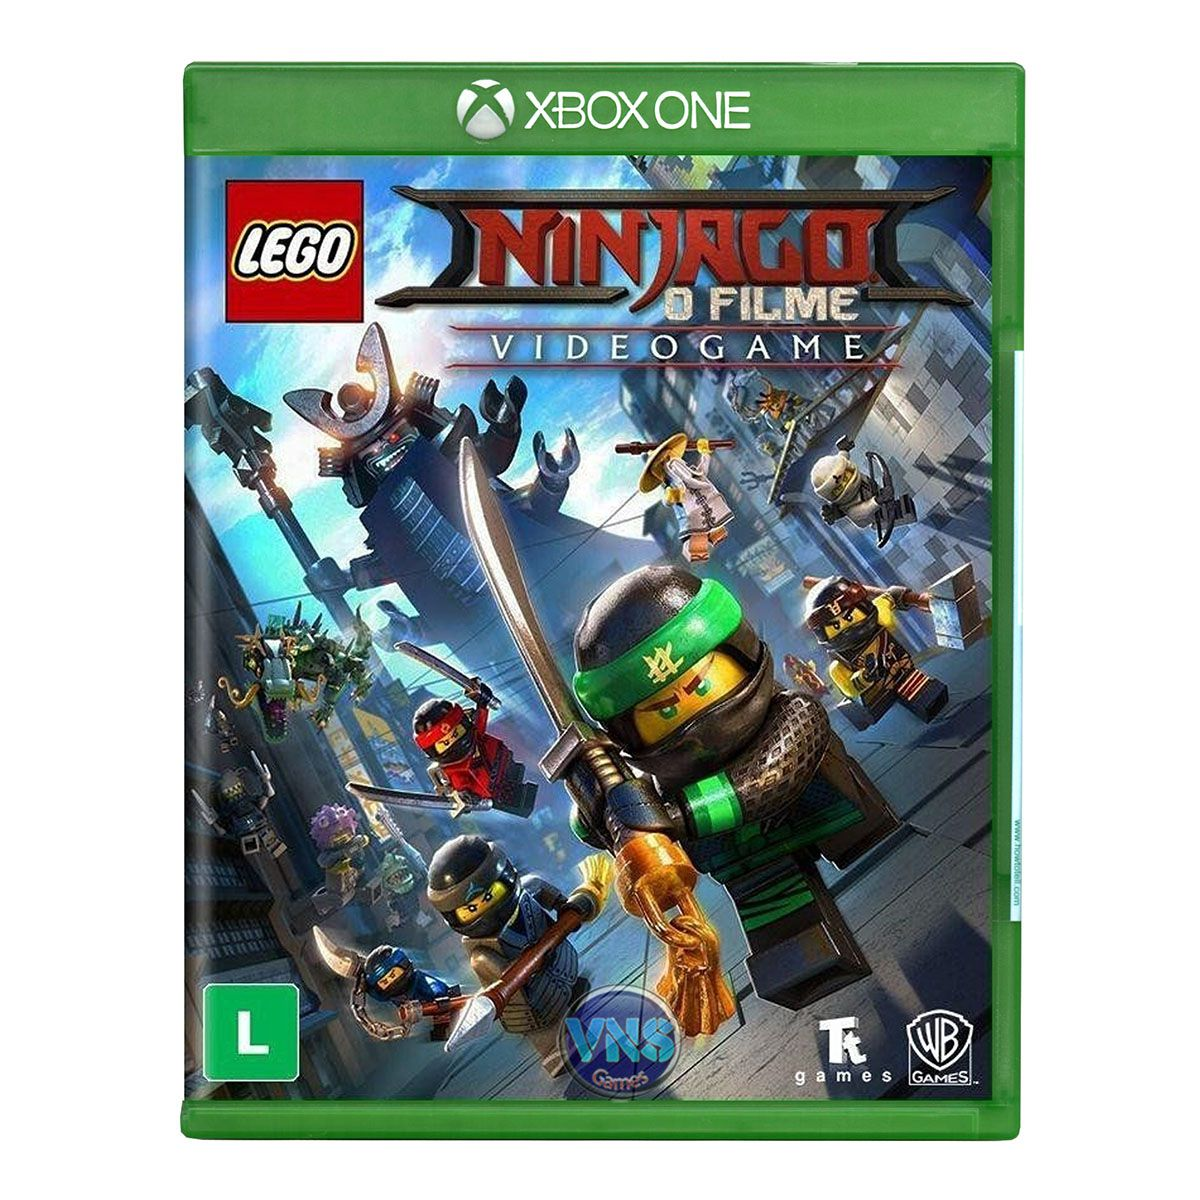 LEGO Ninjago O Filme: Video Game - Xbox One